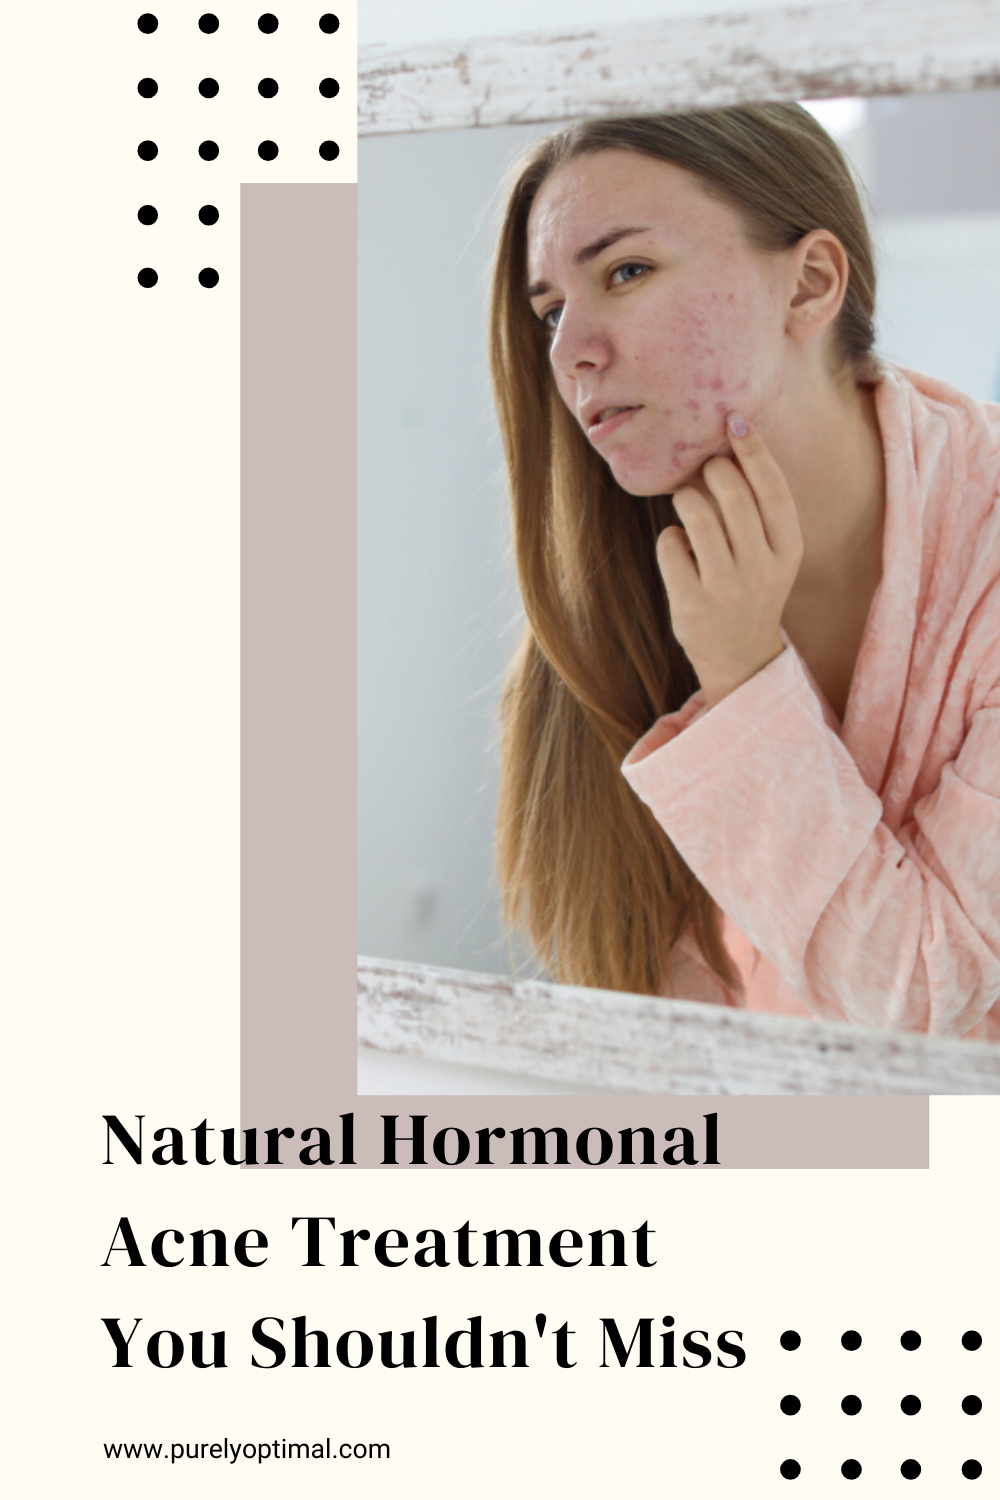 Got hormonal acne breakouts? Don't lose hope! Inside this blog are some helpful tips and a takeaway on how to naturally treat this hormonal imbalance effect. #hormonalacnetreatment #acnetreatment #acneskincareroutine #hormonalimbalance #acnebreakout #acne #breakout #hormonalacne #hormoneimbalance